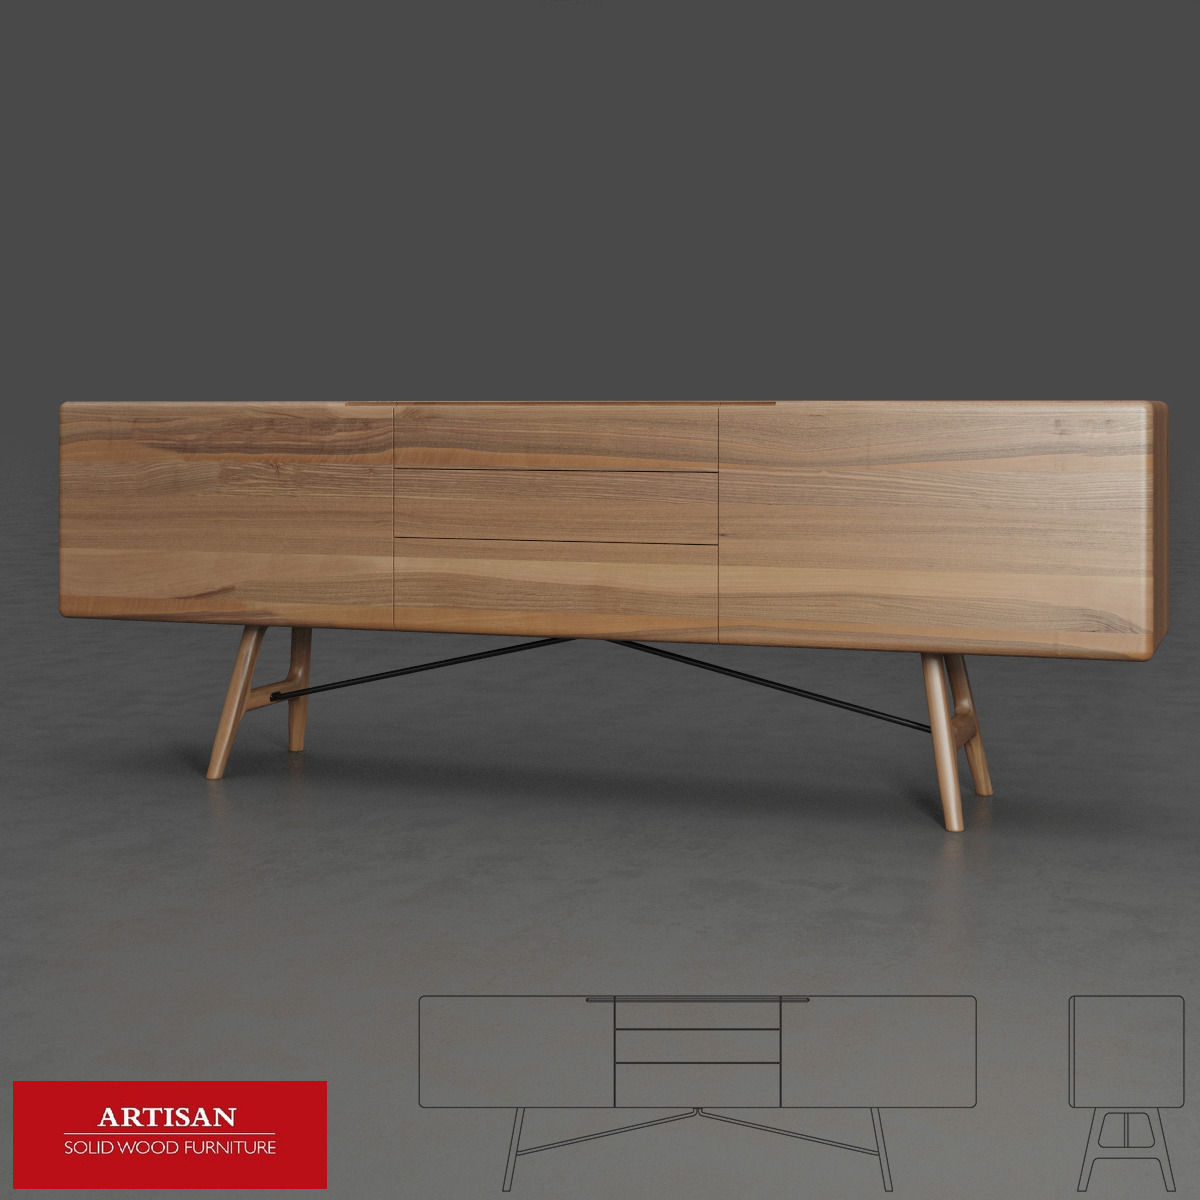 Artisan tesa sideboard 3d model obj for Sideboard 3d